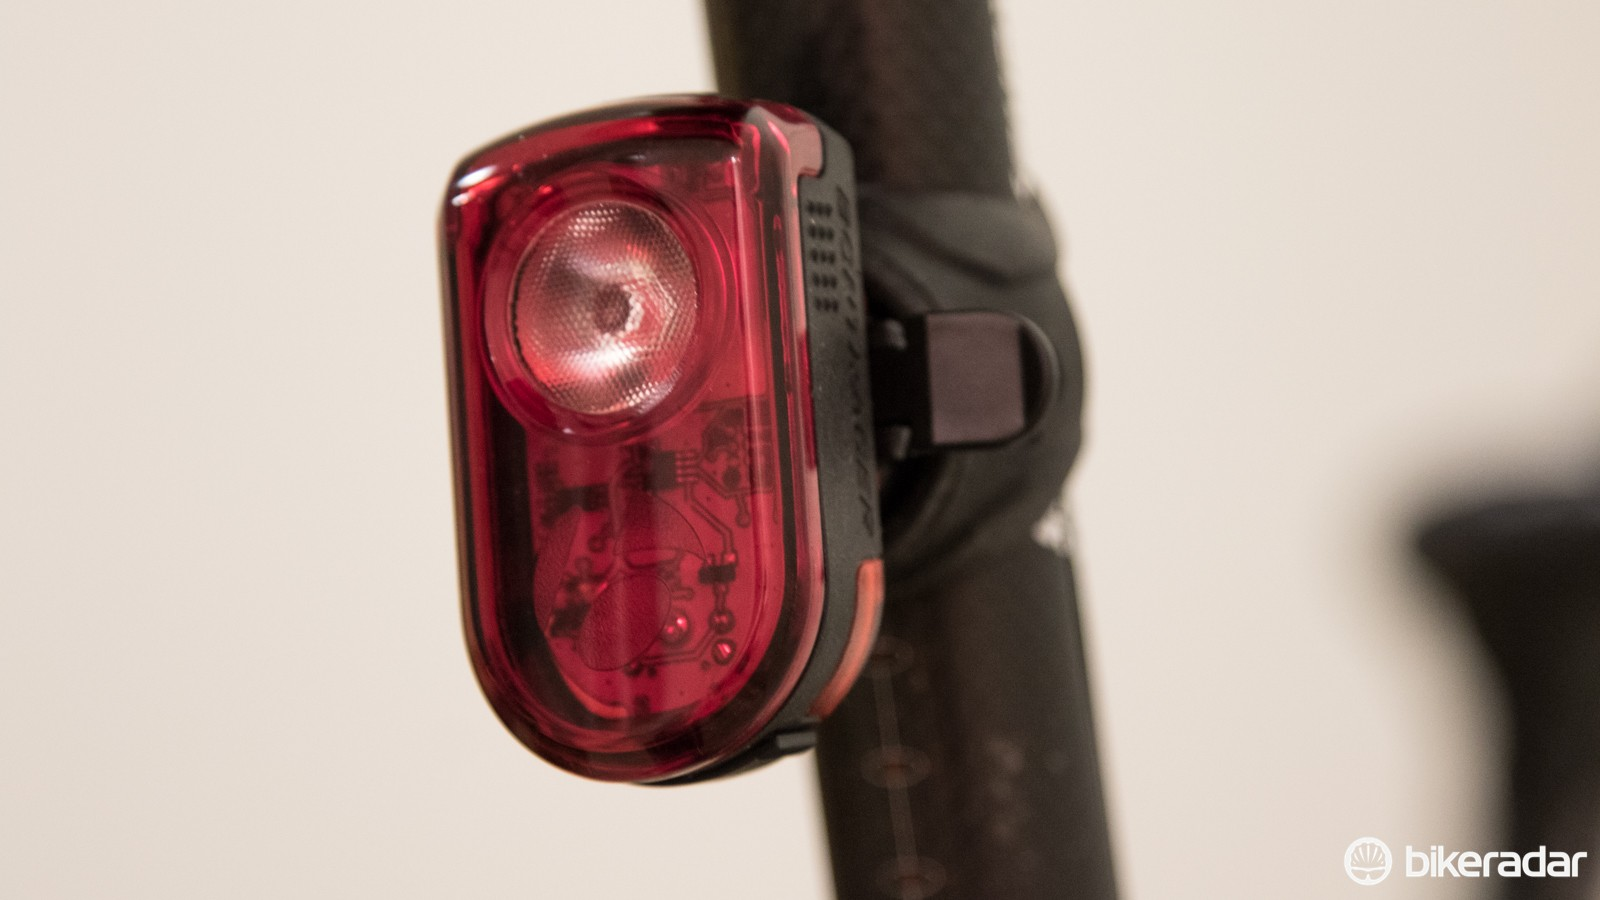 The Bontrager Flare R packs a punch with its 65 lumens